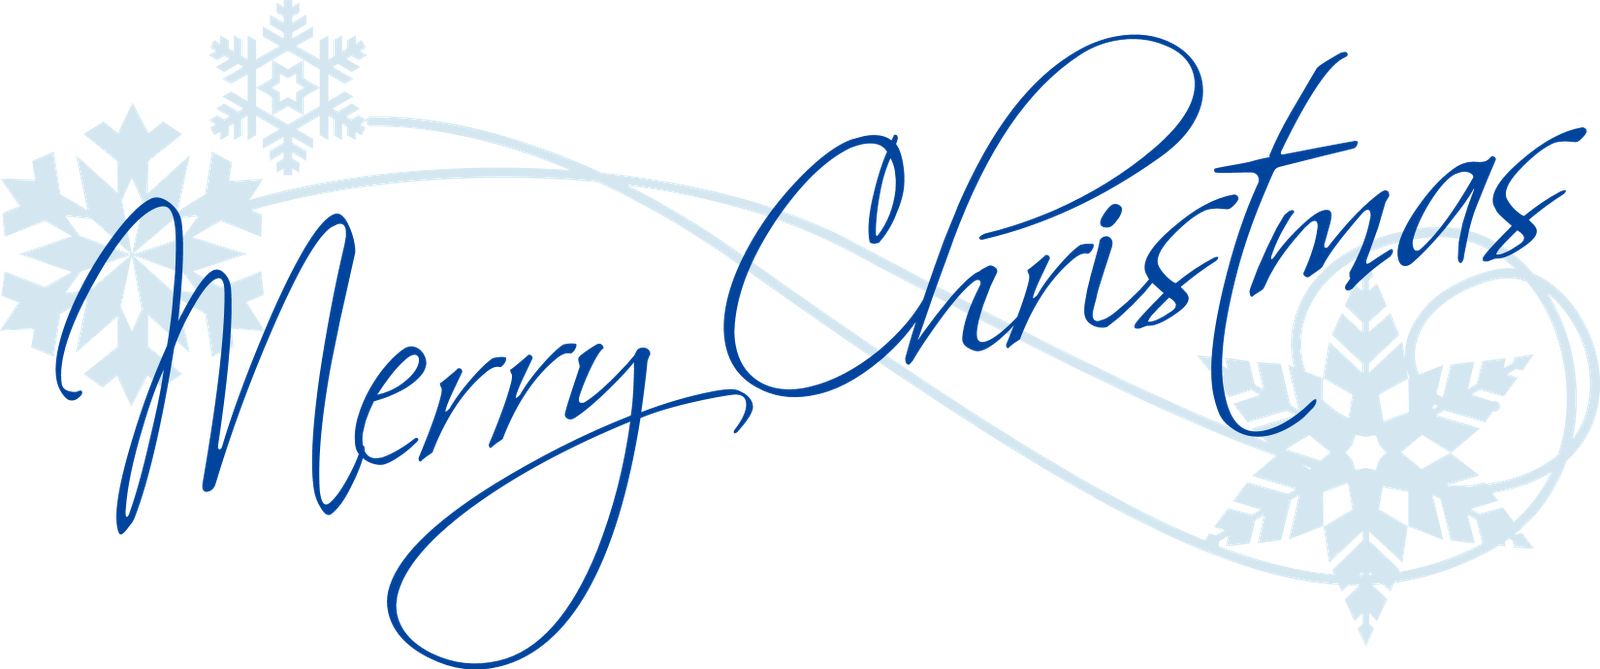 Merry Christmas Text Transparent (With images) Christmas